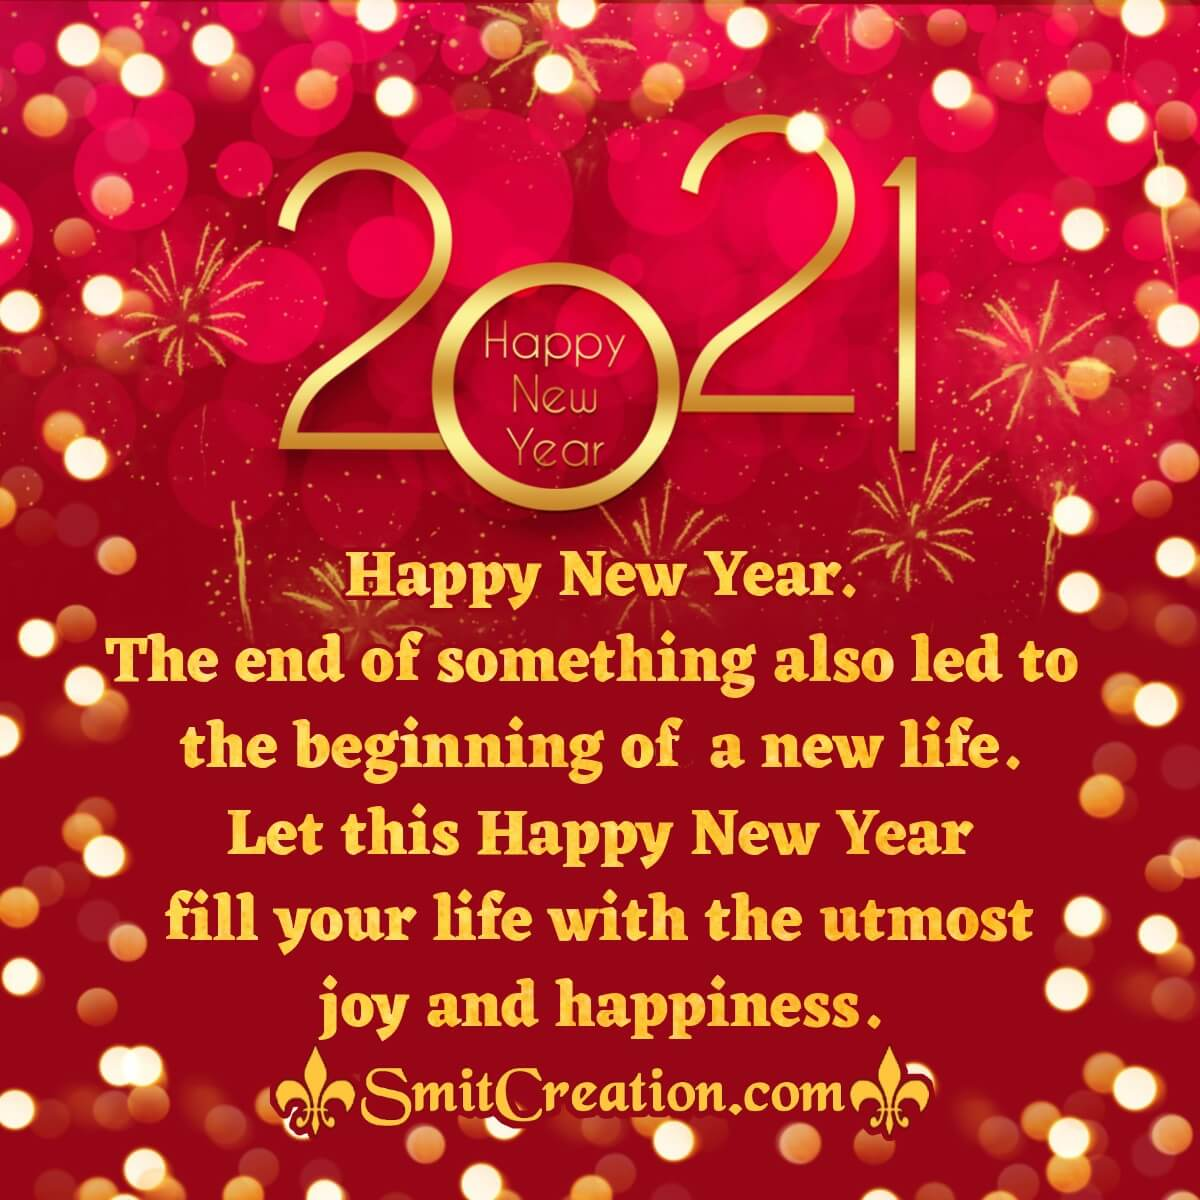 Happy 2021 New Year Images